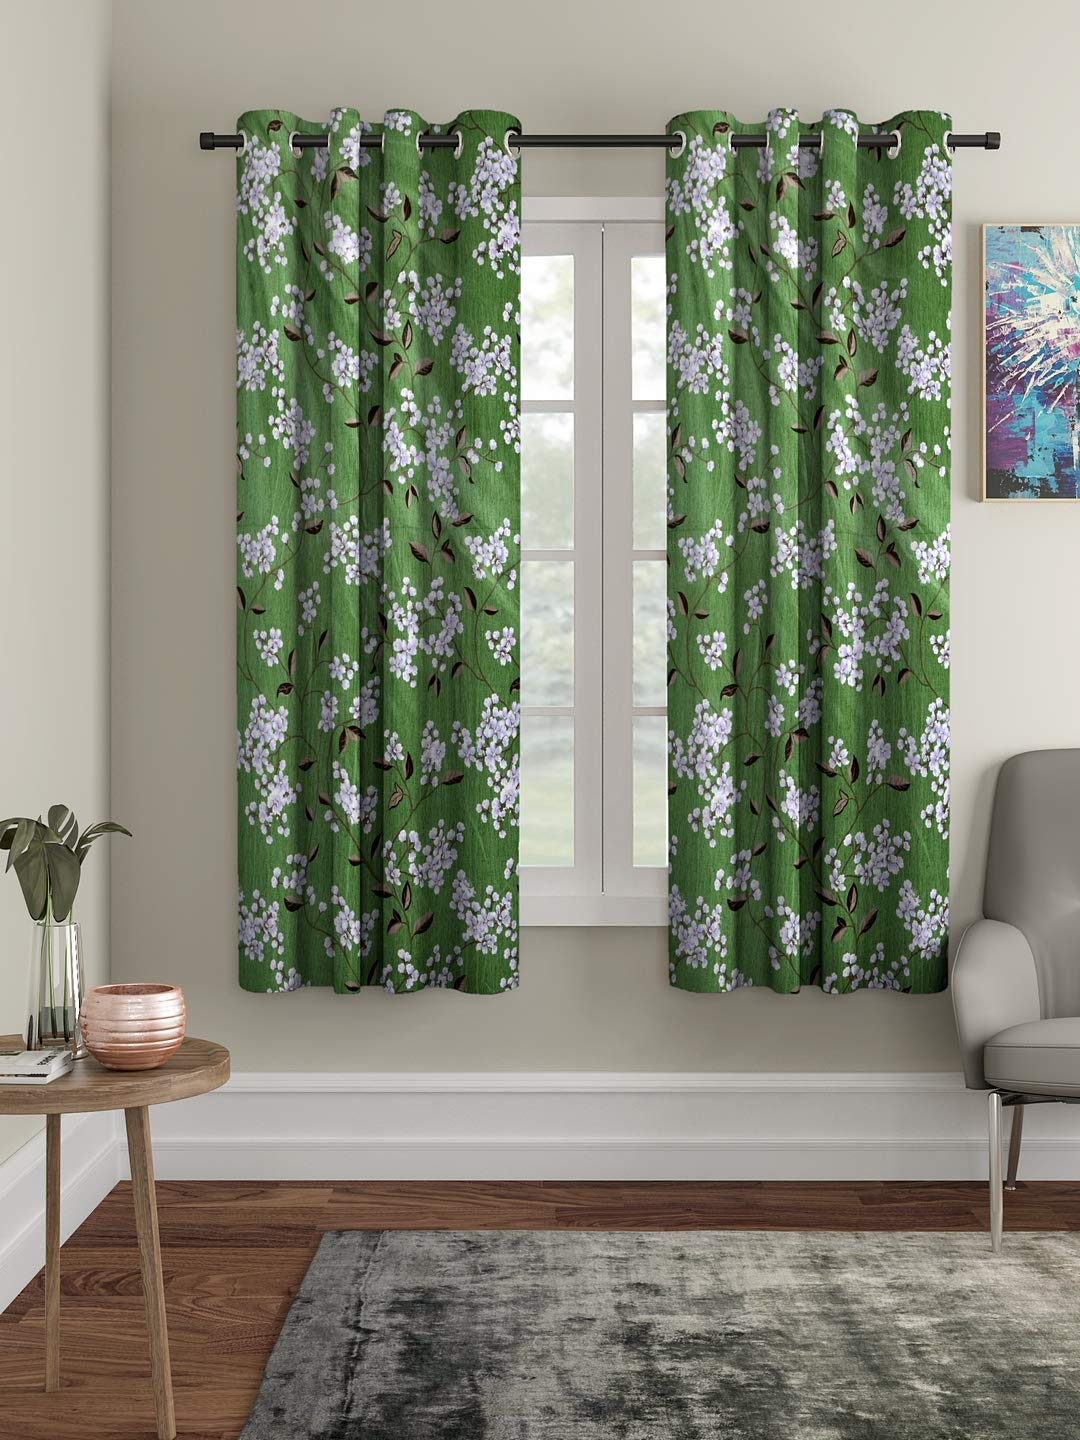 Buy Cortina 2 Piece Eyelet Polyester Window Curtain Set 5 Feet Fancy Printed Curtains For Your Living Room Bedroom And More Green 150 X 115 Cm Online At Low Prices In India Amazon In